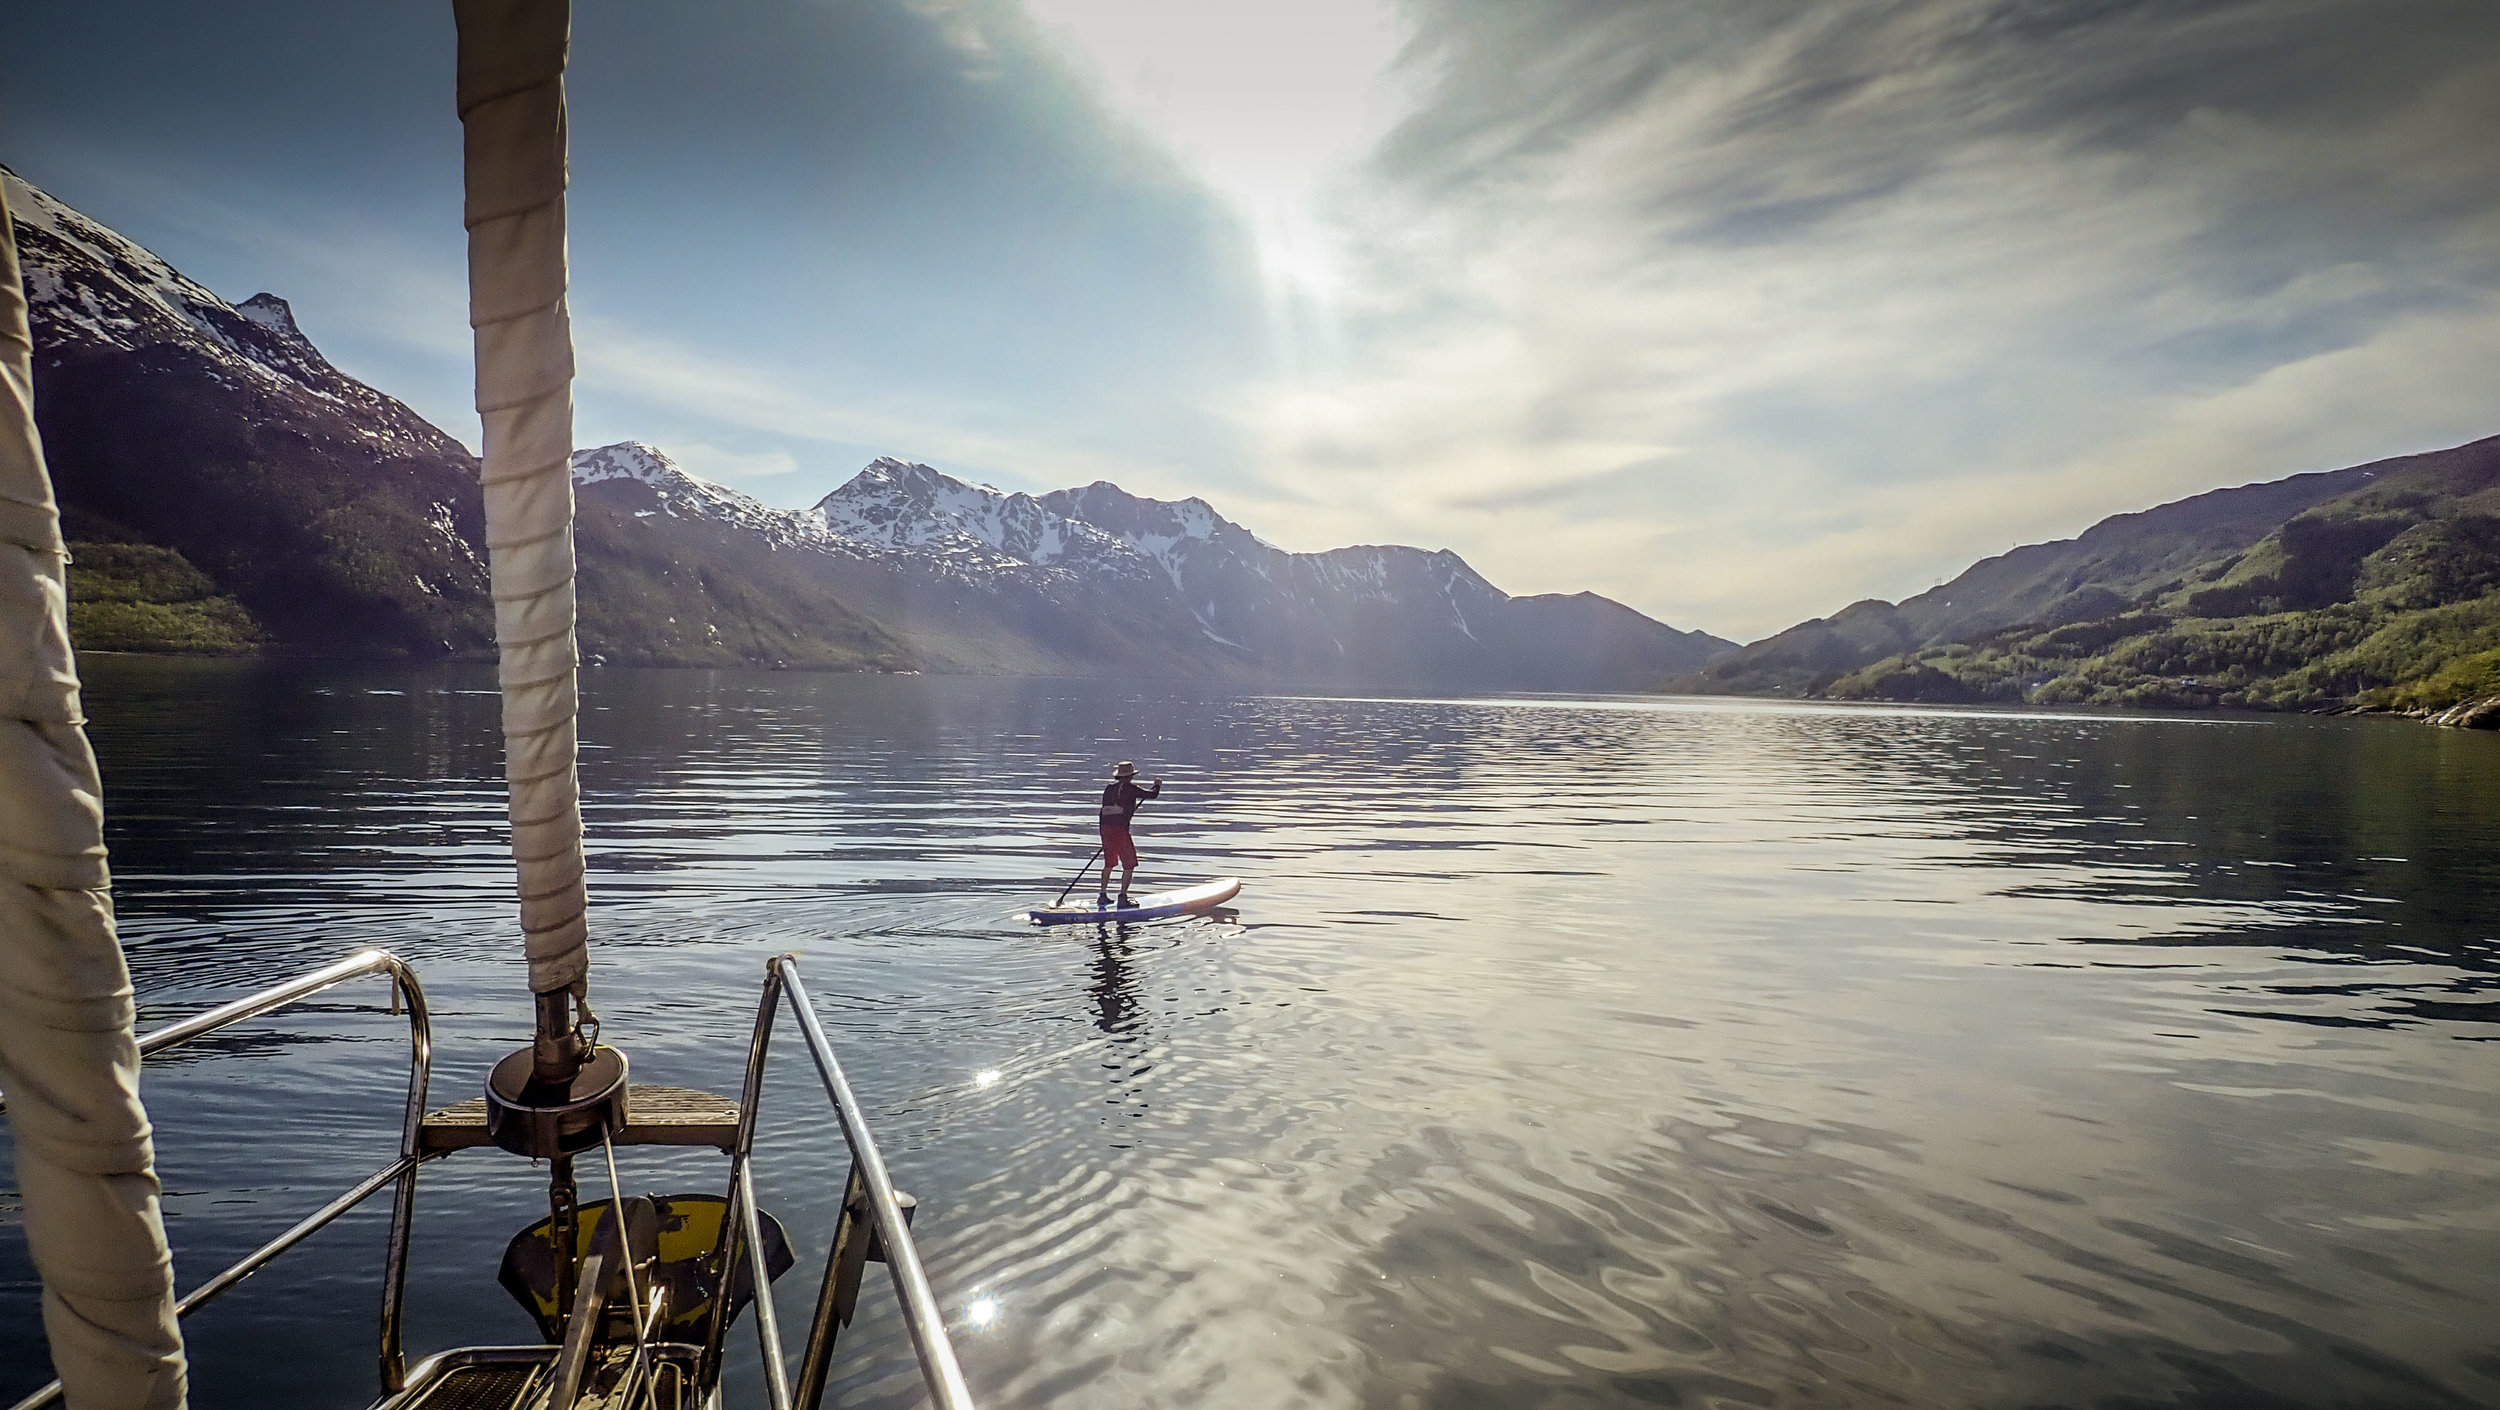 Paddle boarding in Hollandsfjord, Norway